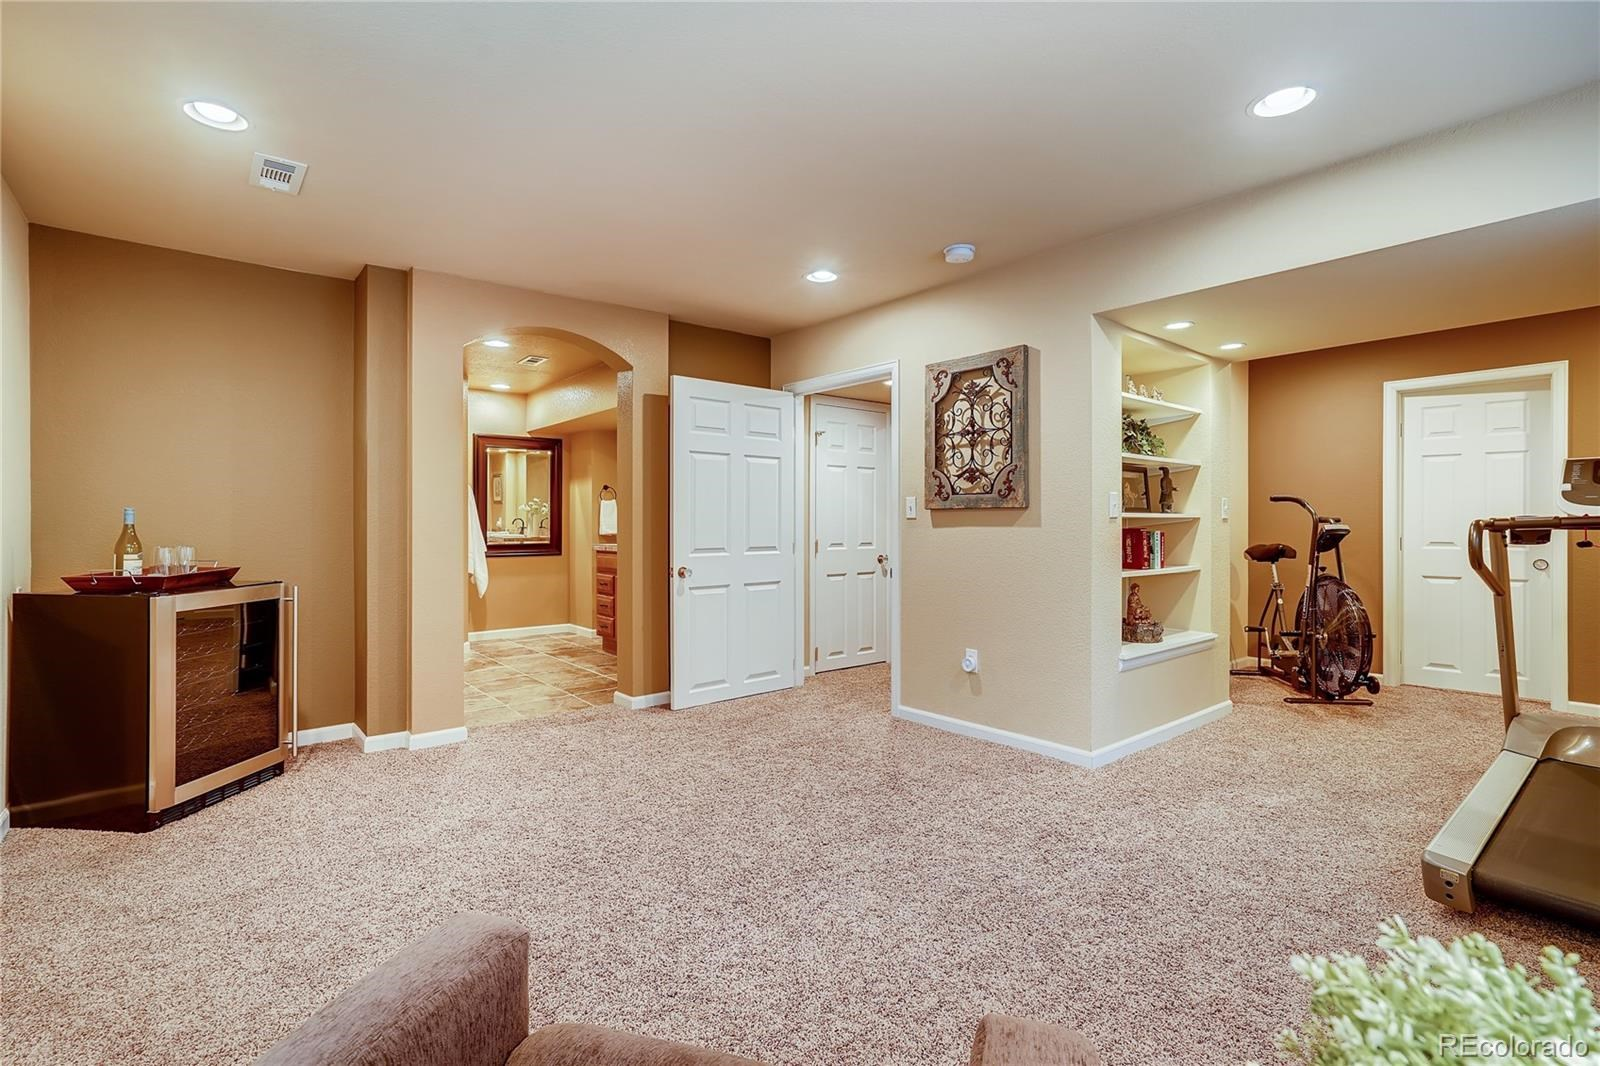 MLS# 8020804 - 4 - 8642 Five Parks Drive, Arvada, CO 80005